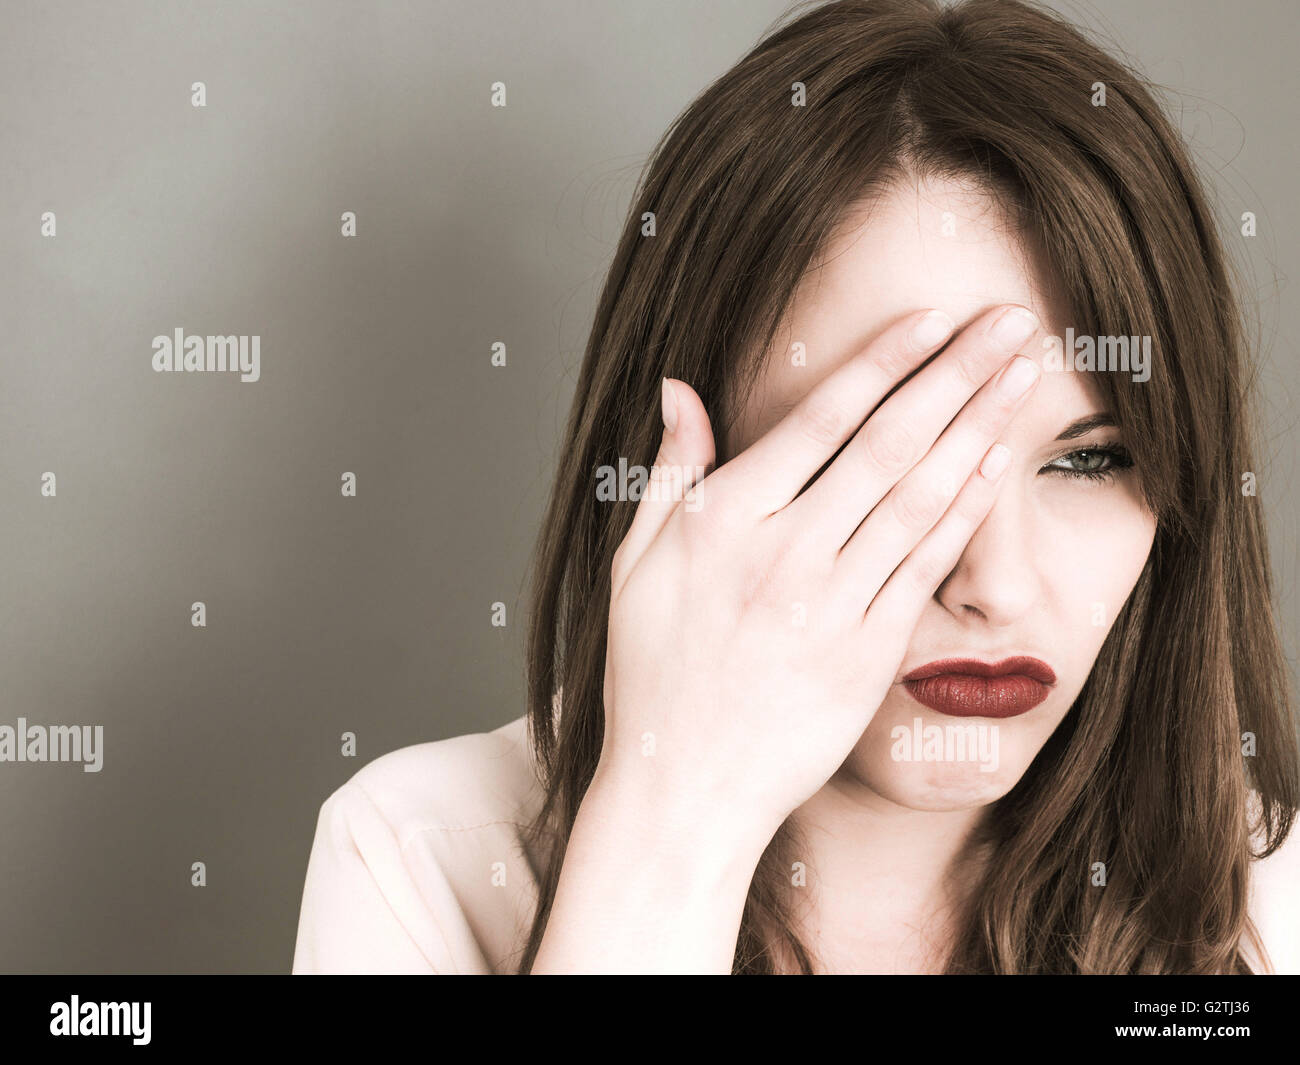 Creative Portrait of a Young Caucasian Woman Covering Her Right Eye With Her Hand Looking Miserable and Concerned - Stock Image